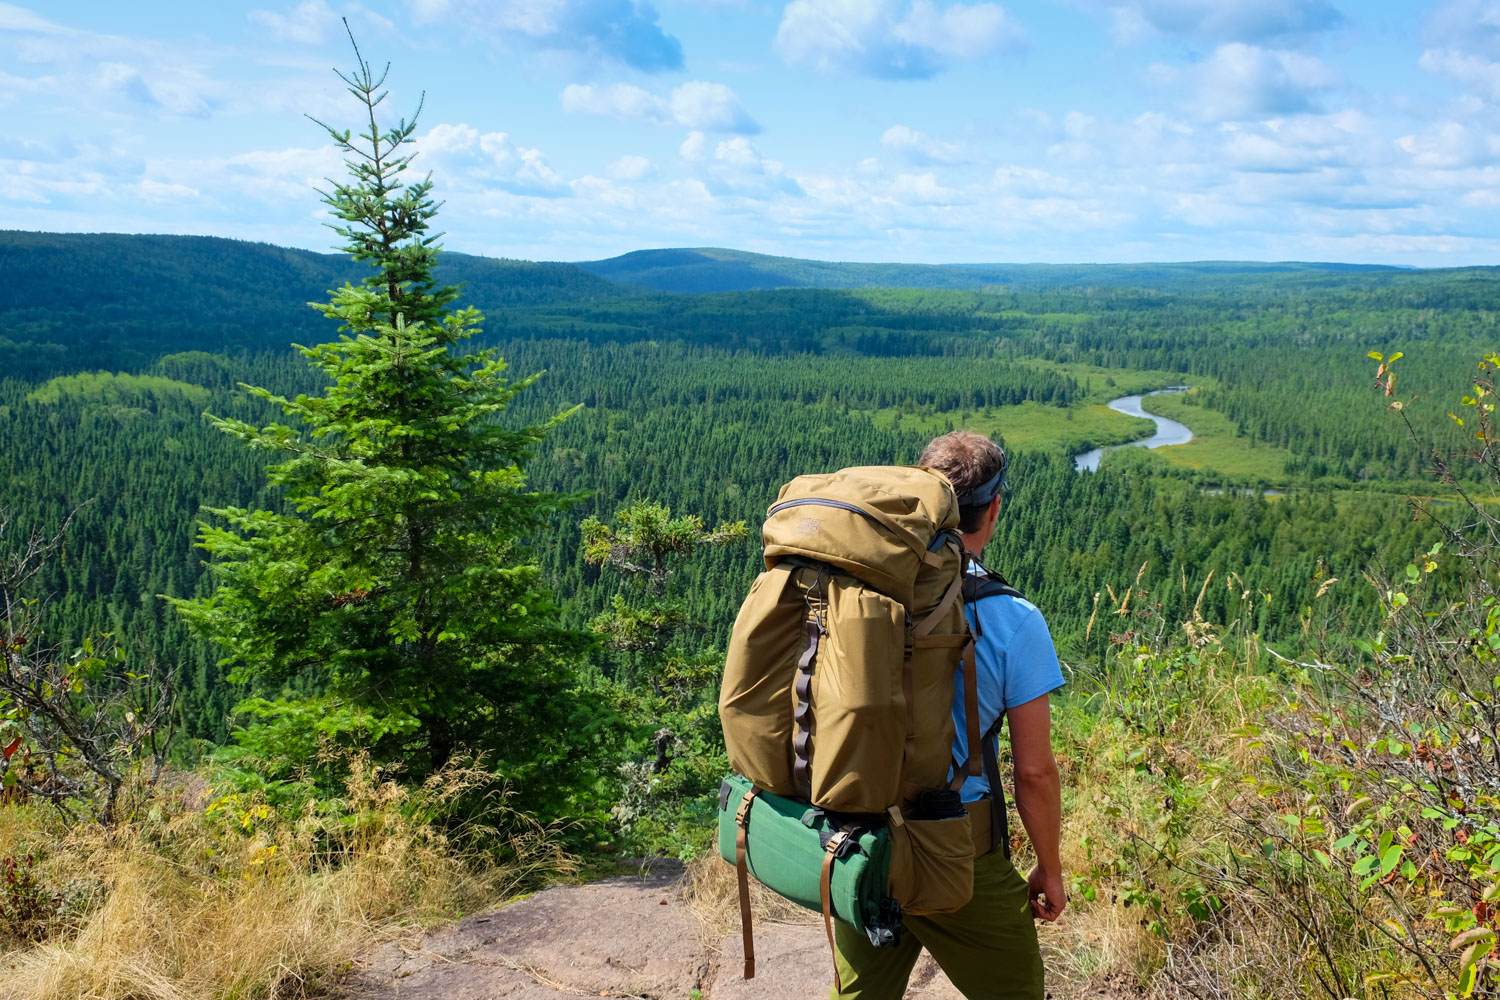 John Huston on the Superior Hiking Trail in northern Minnesota. © John Huston